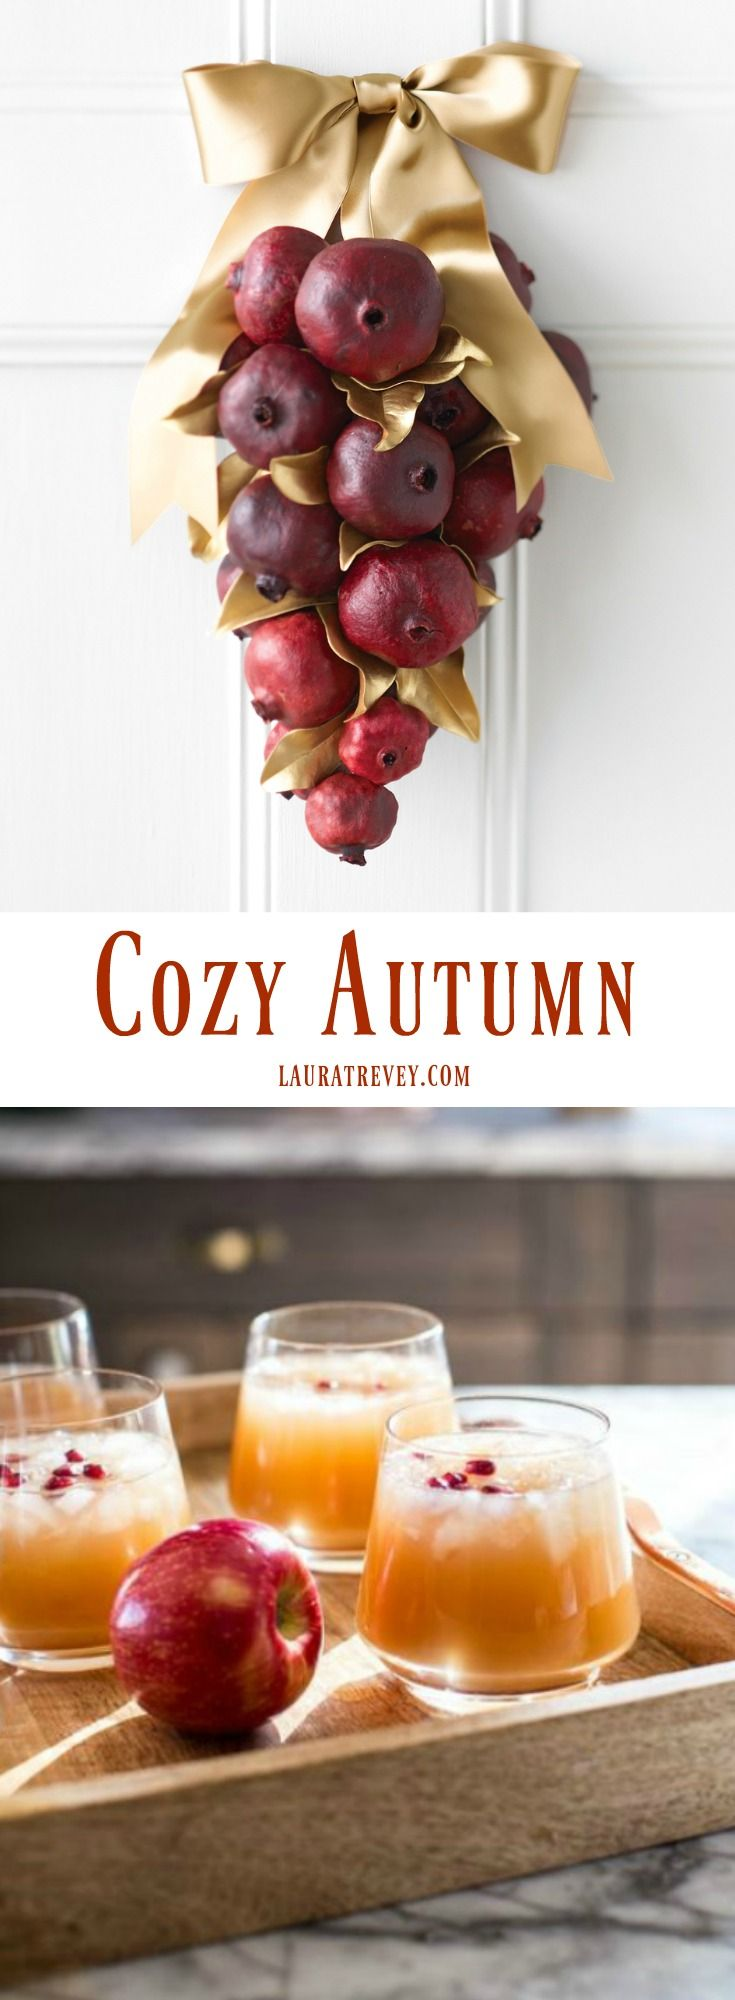 Cozy Autumn Inspiration